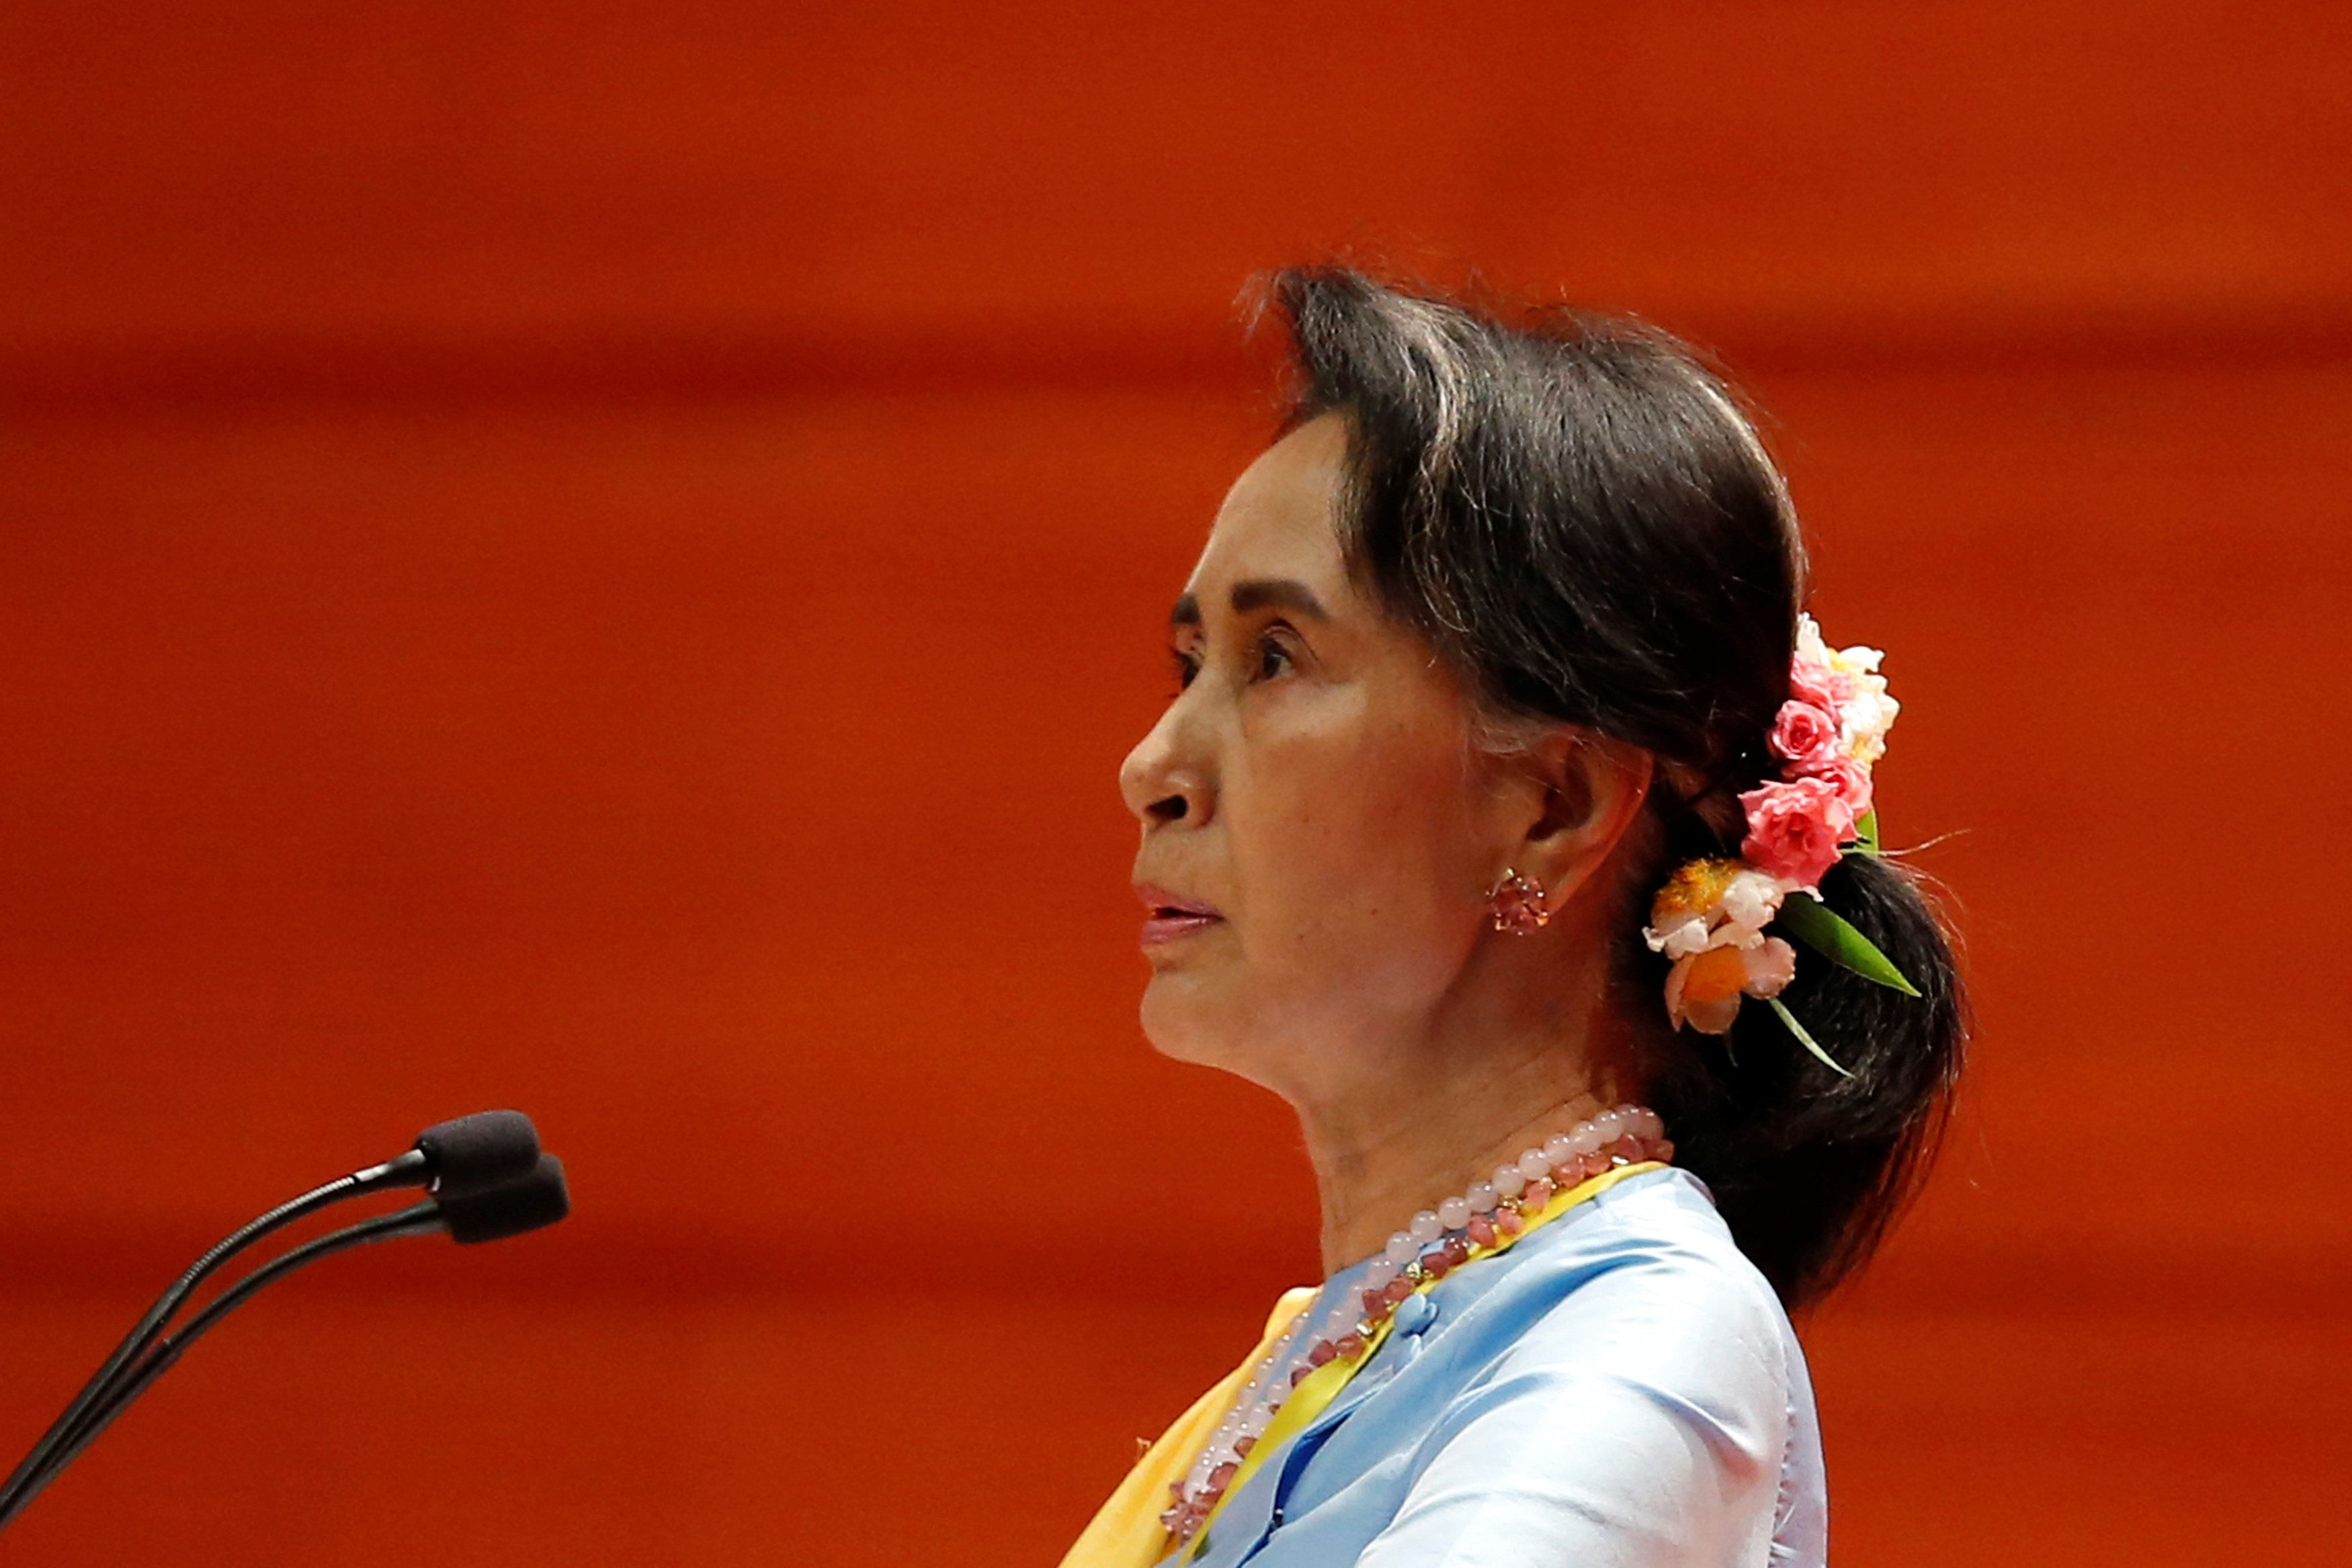 Myanmar State Counsellor Aung San Suu Kyi speaks at the opening ceremony of the 21st Century Panglong Conference in Naypyitaw, Myanmar May 24, 2017. REUTERS/Soe Zeya Tun